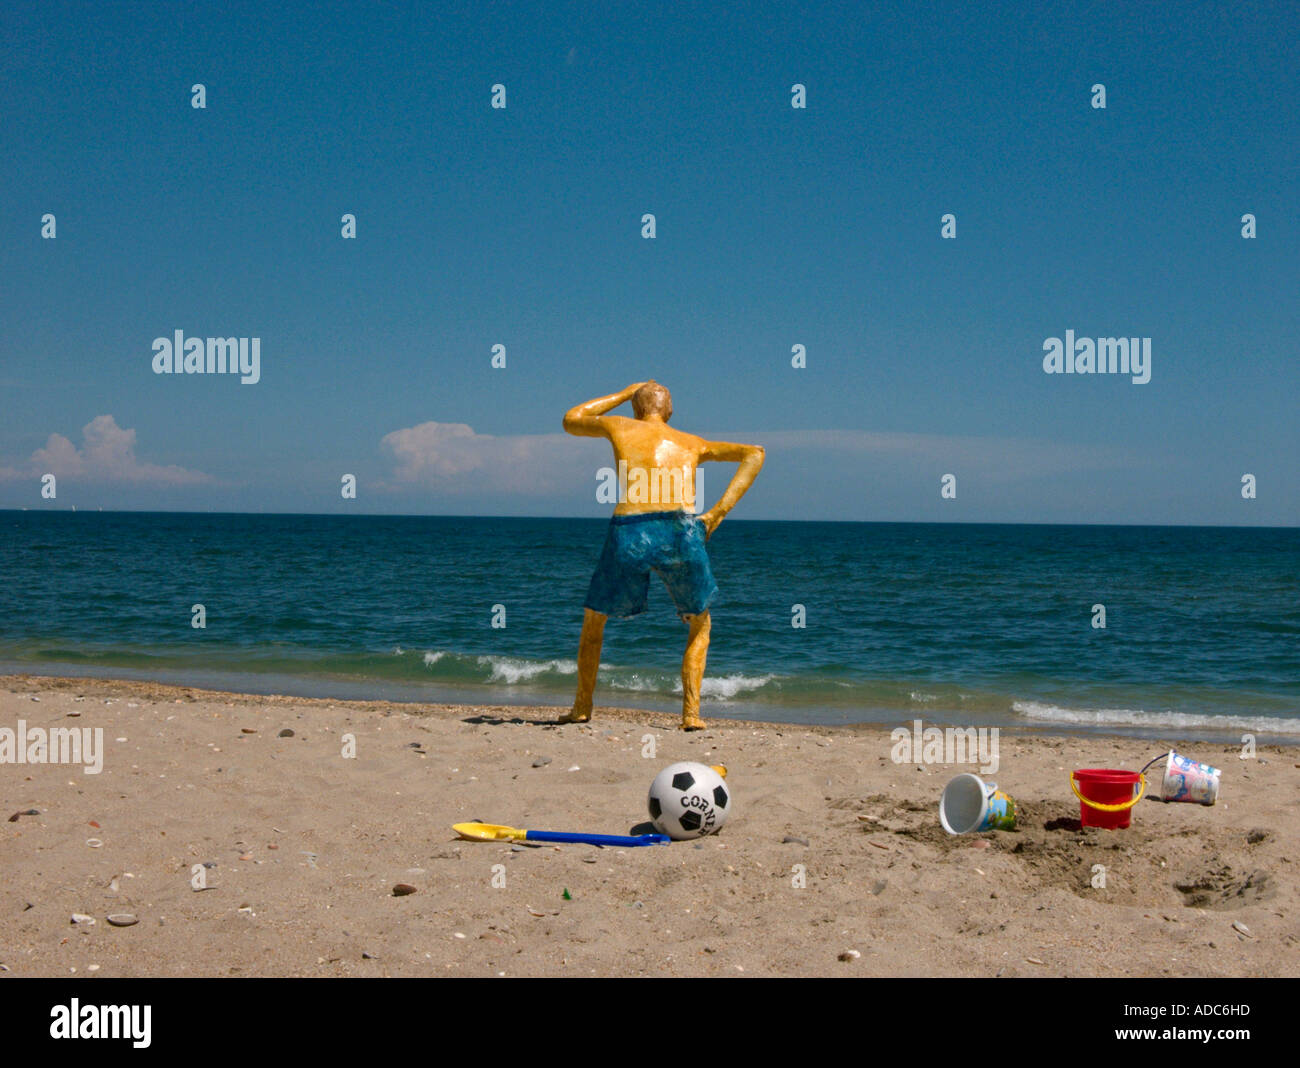 a sculpture of a man in shorts stands on a beach  looking out to sea surrounded by buckets, spades and a football - Stock Image